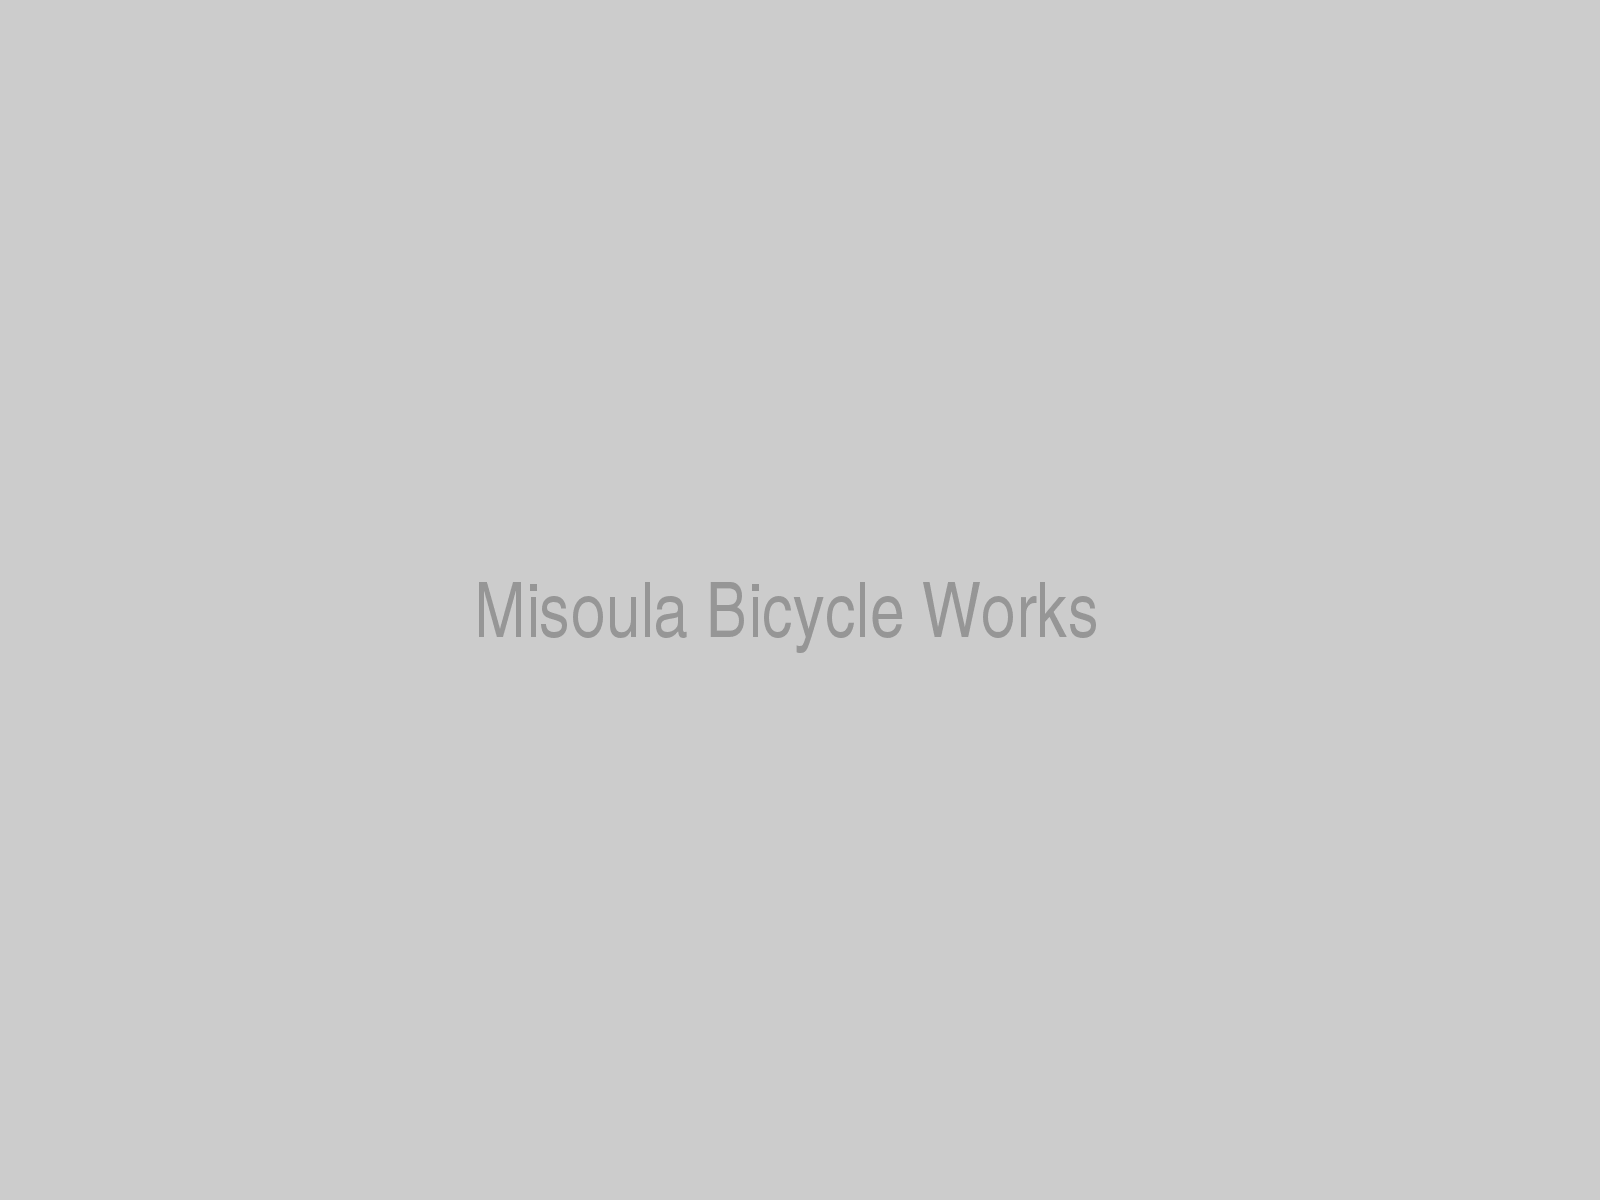 Misoula Bicycle Works